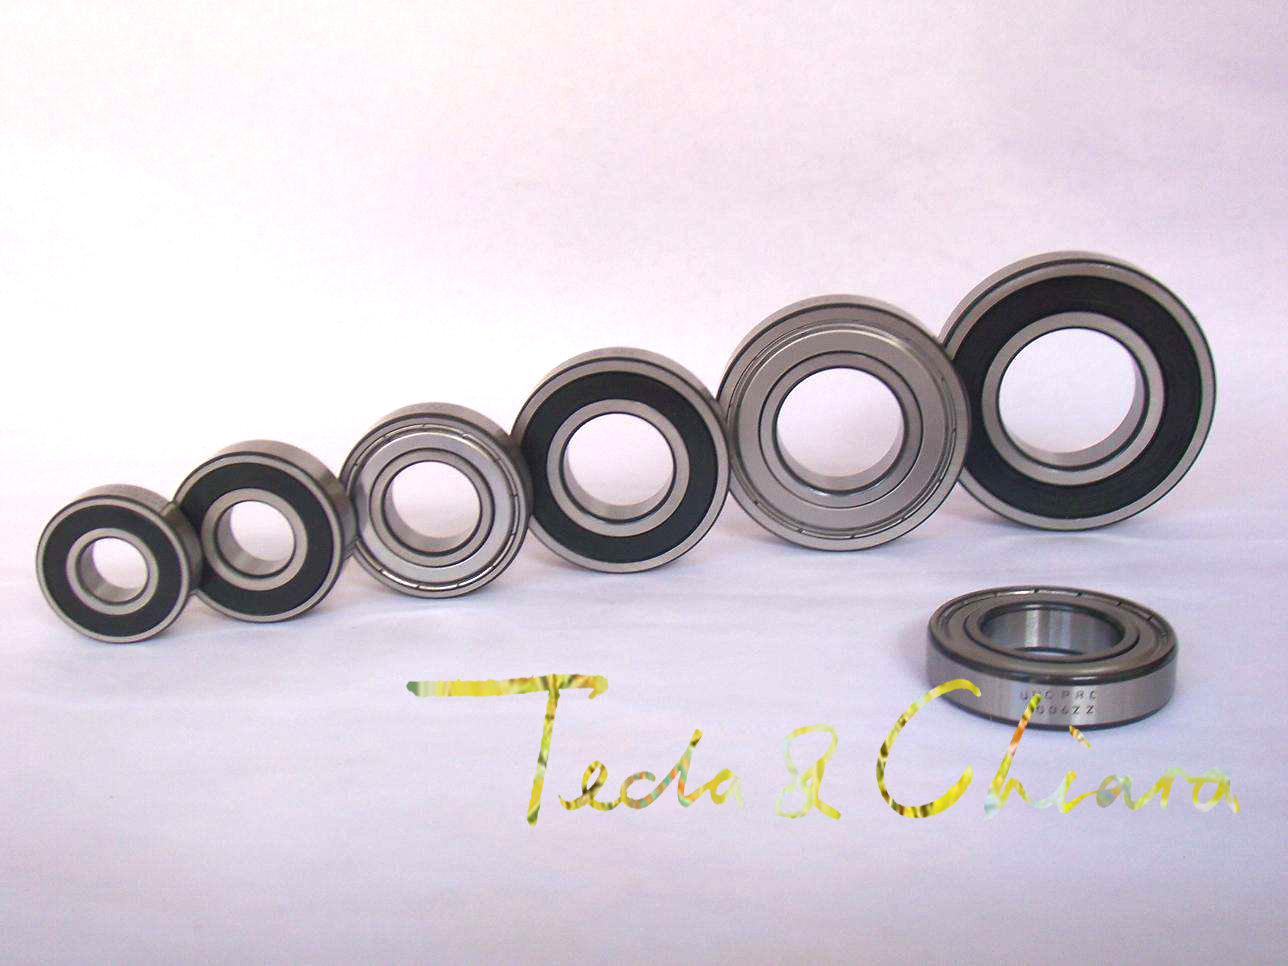 675-2Z 675ZZ MR85 MR85ZZ MR85RS MR85-2Z MR85Z MR85-2RS ZZ RS RZ 2RZ L-850 Deep Groove Ball Bearings 5 x 8 x 2.5mm High Quality диван 3le rs vl7217 47a z 08 kd5110